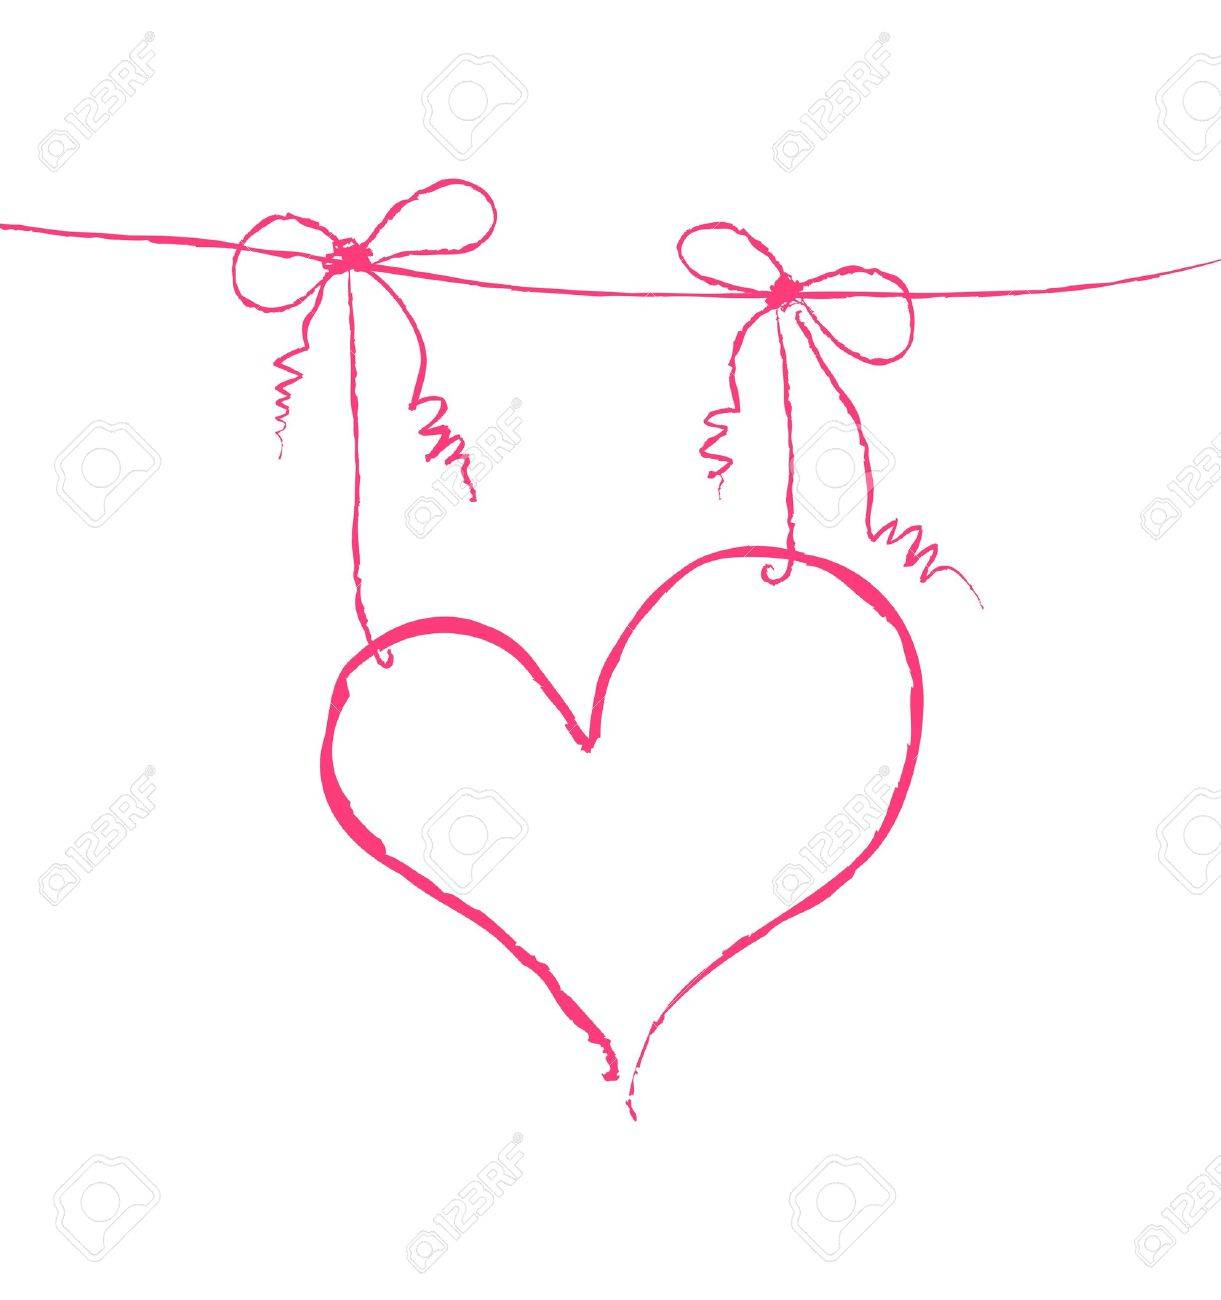 Vector illustration of a heart hanging on strings Stock Vector - 9426949